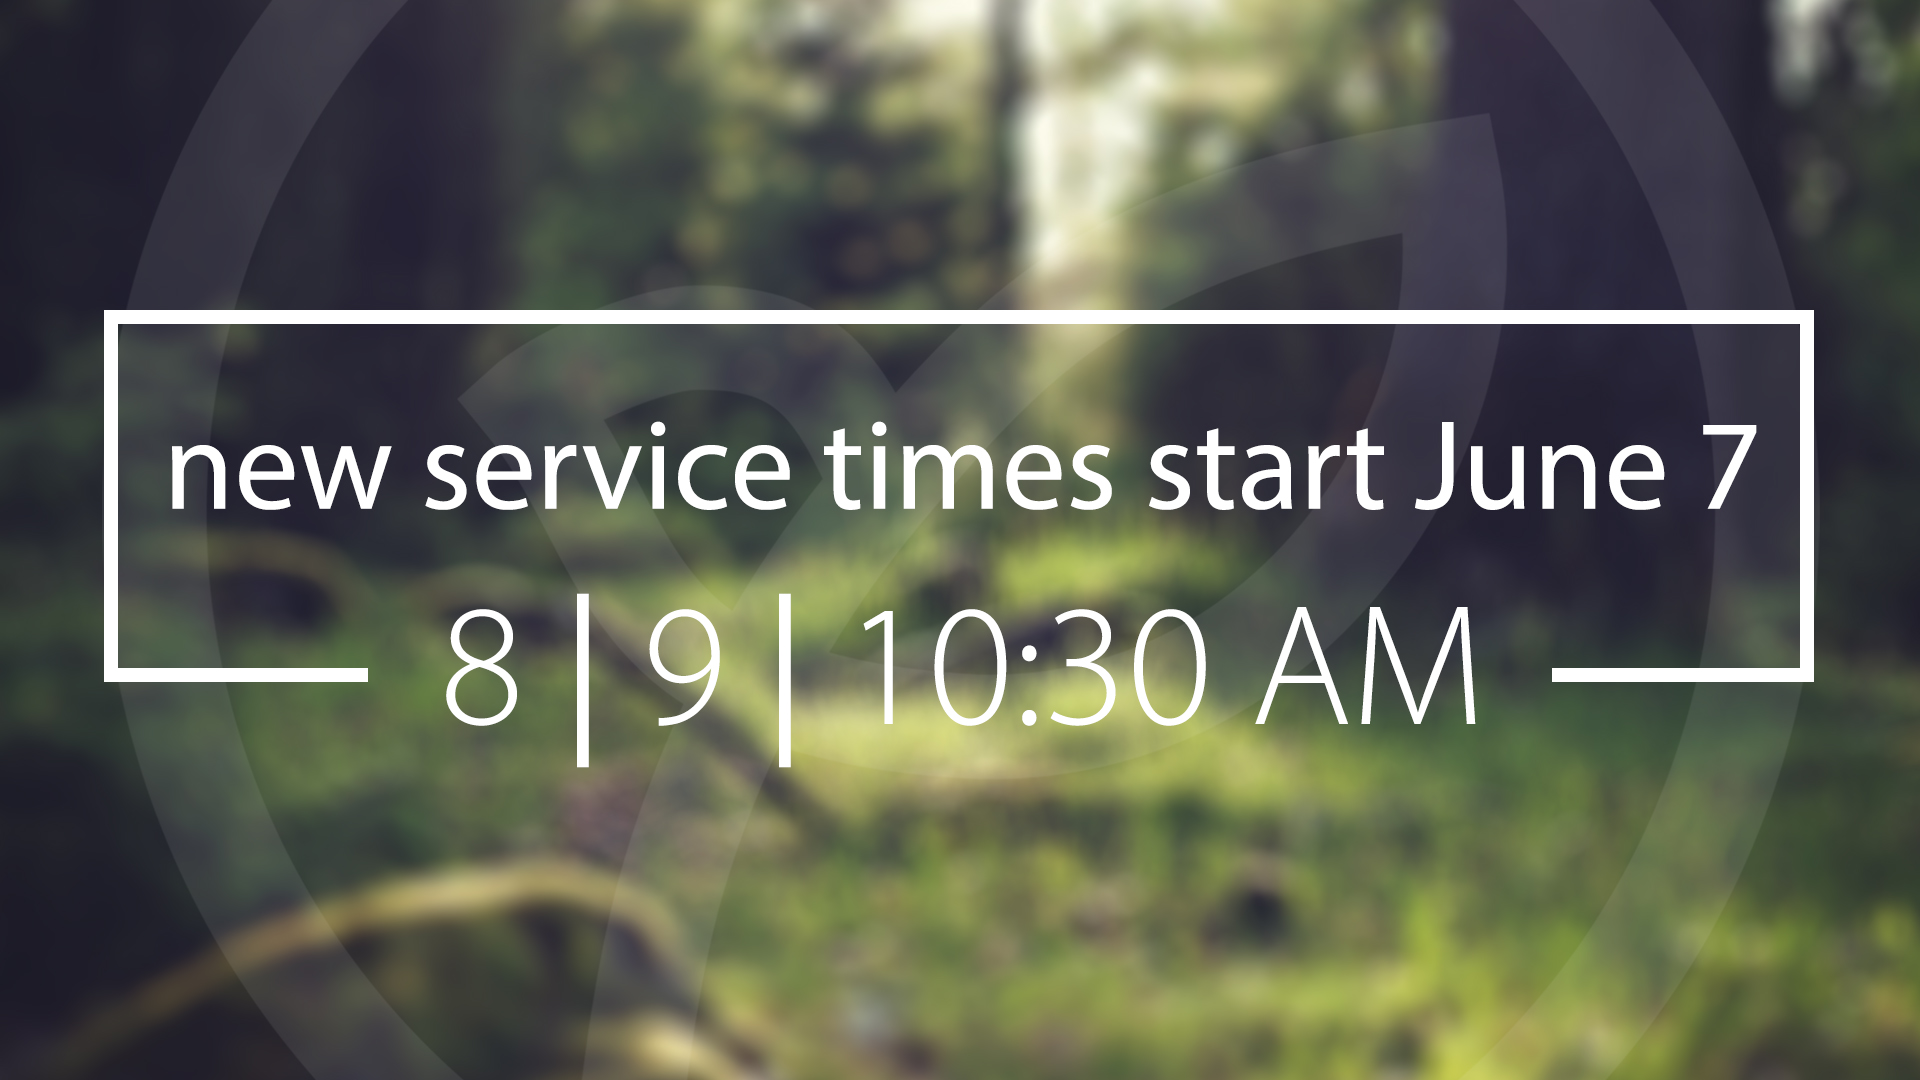 A Change in Sunday Service Times